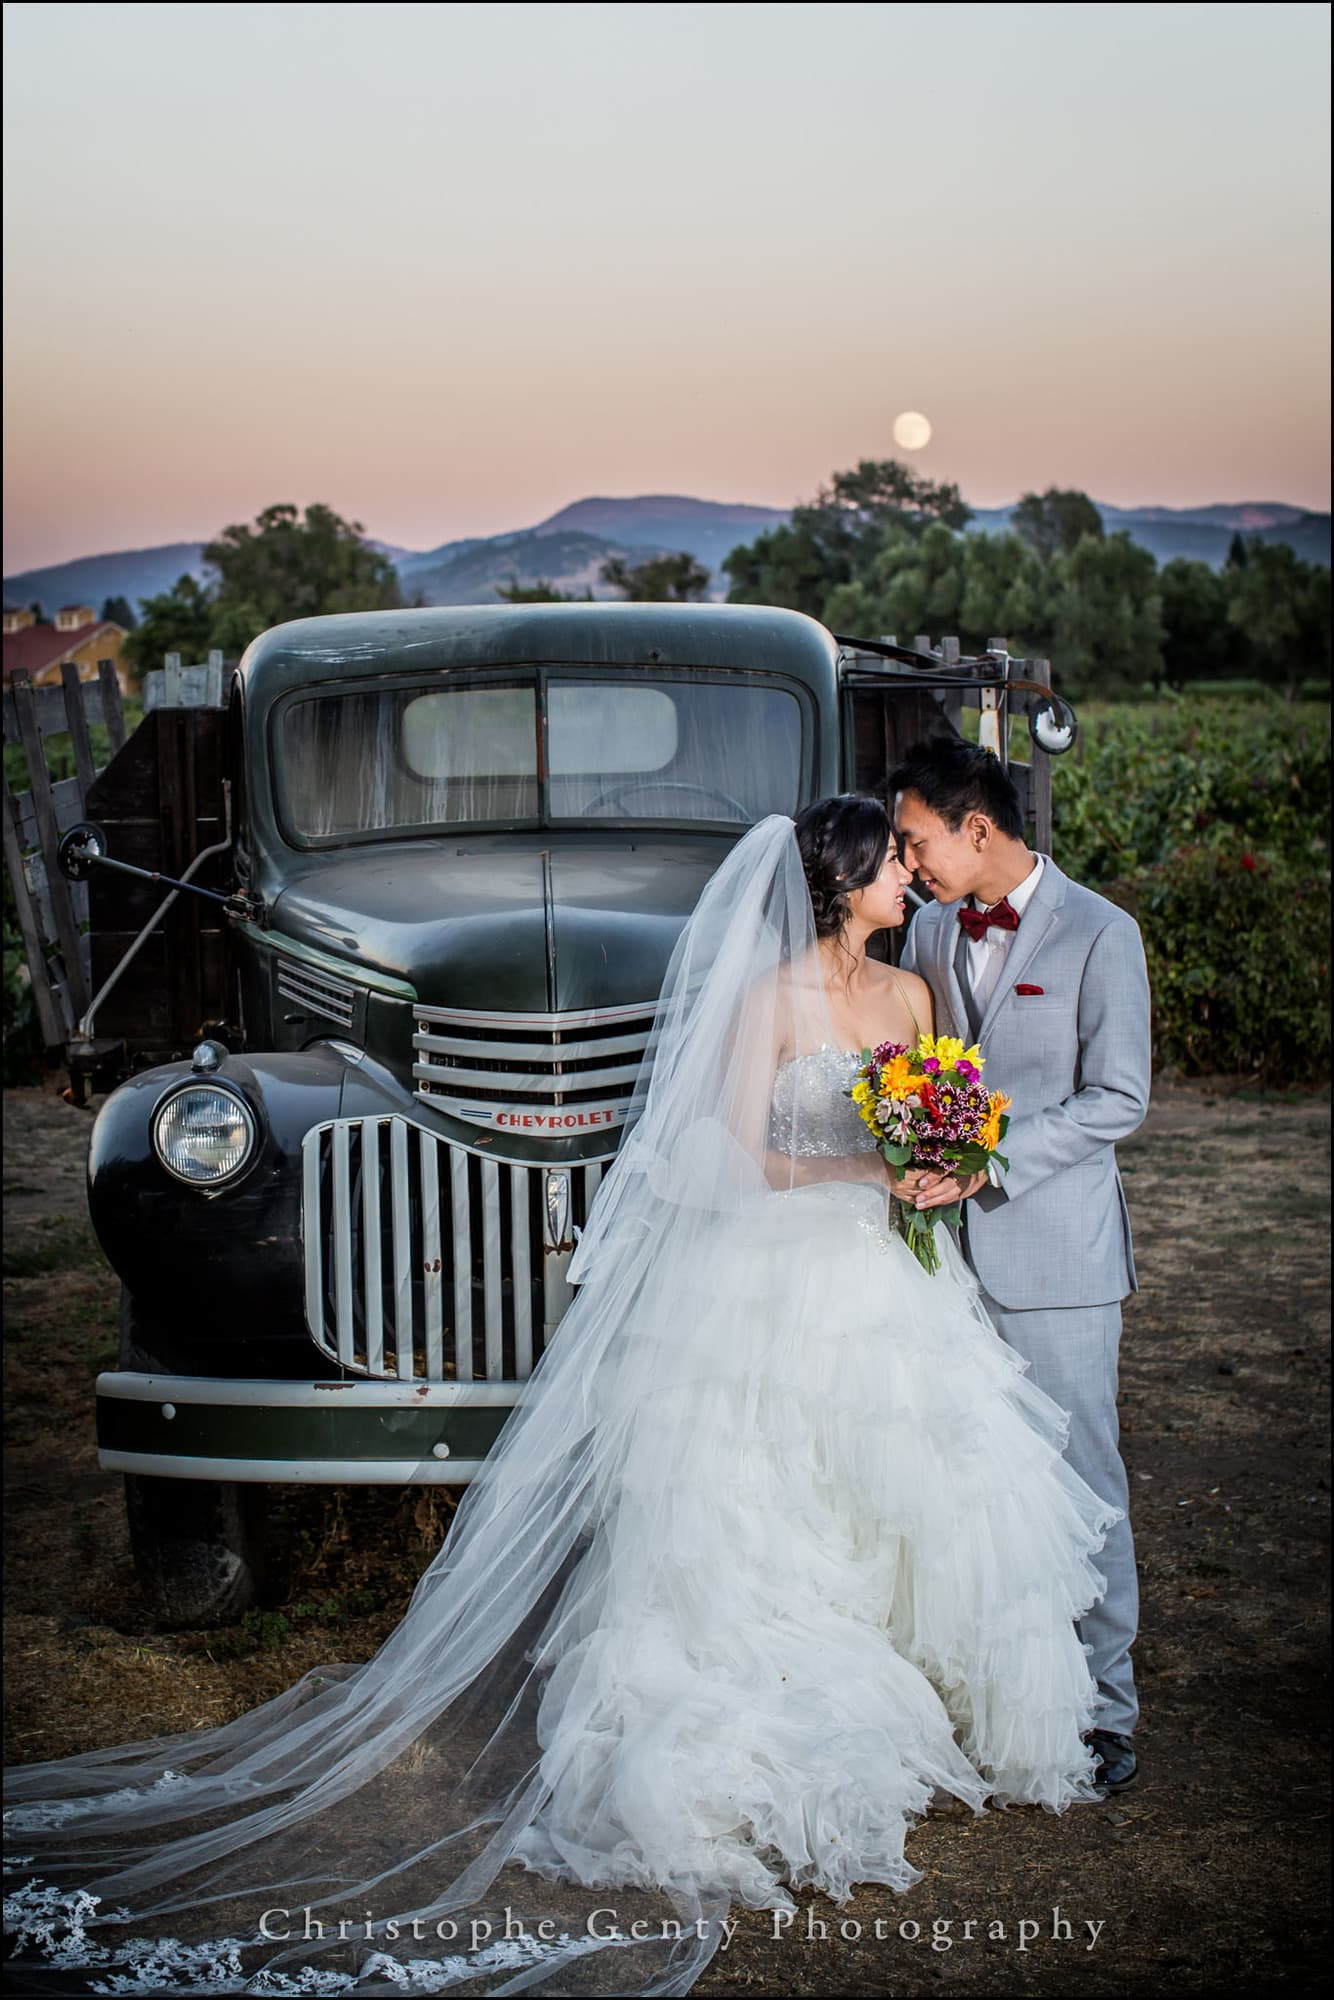 Pre-wedding photography at V.Sattui Winery in The Napa Valley